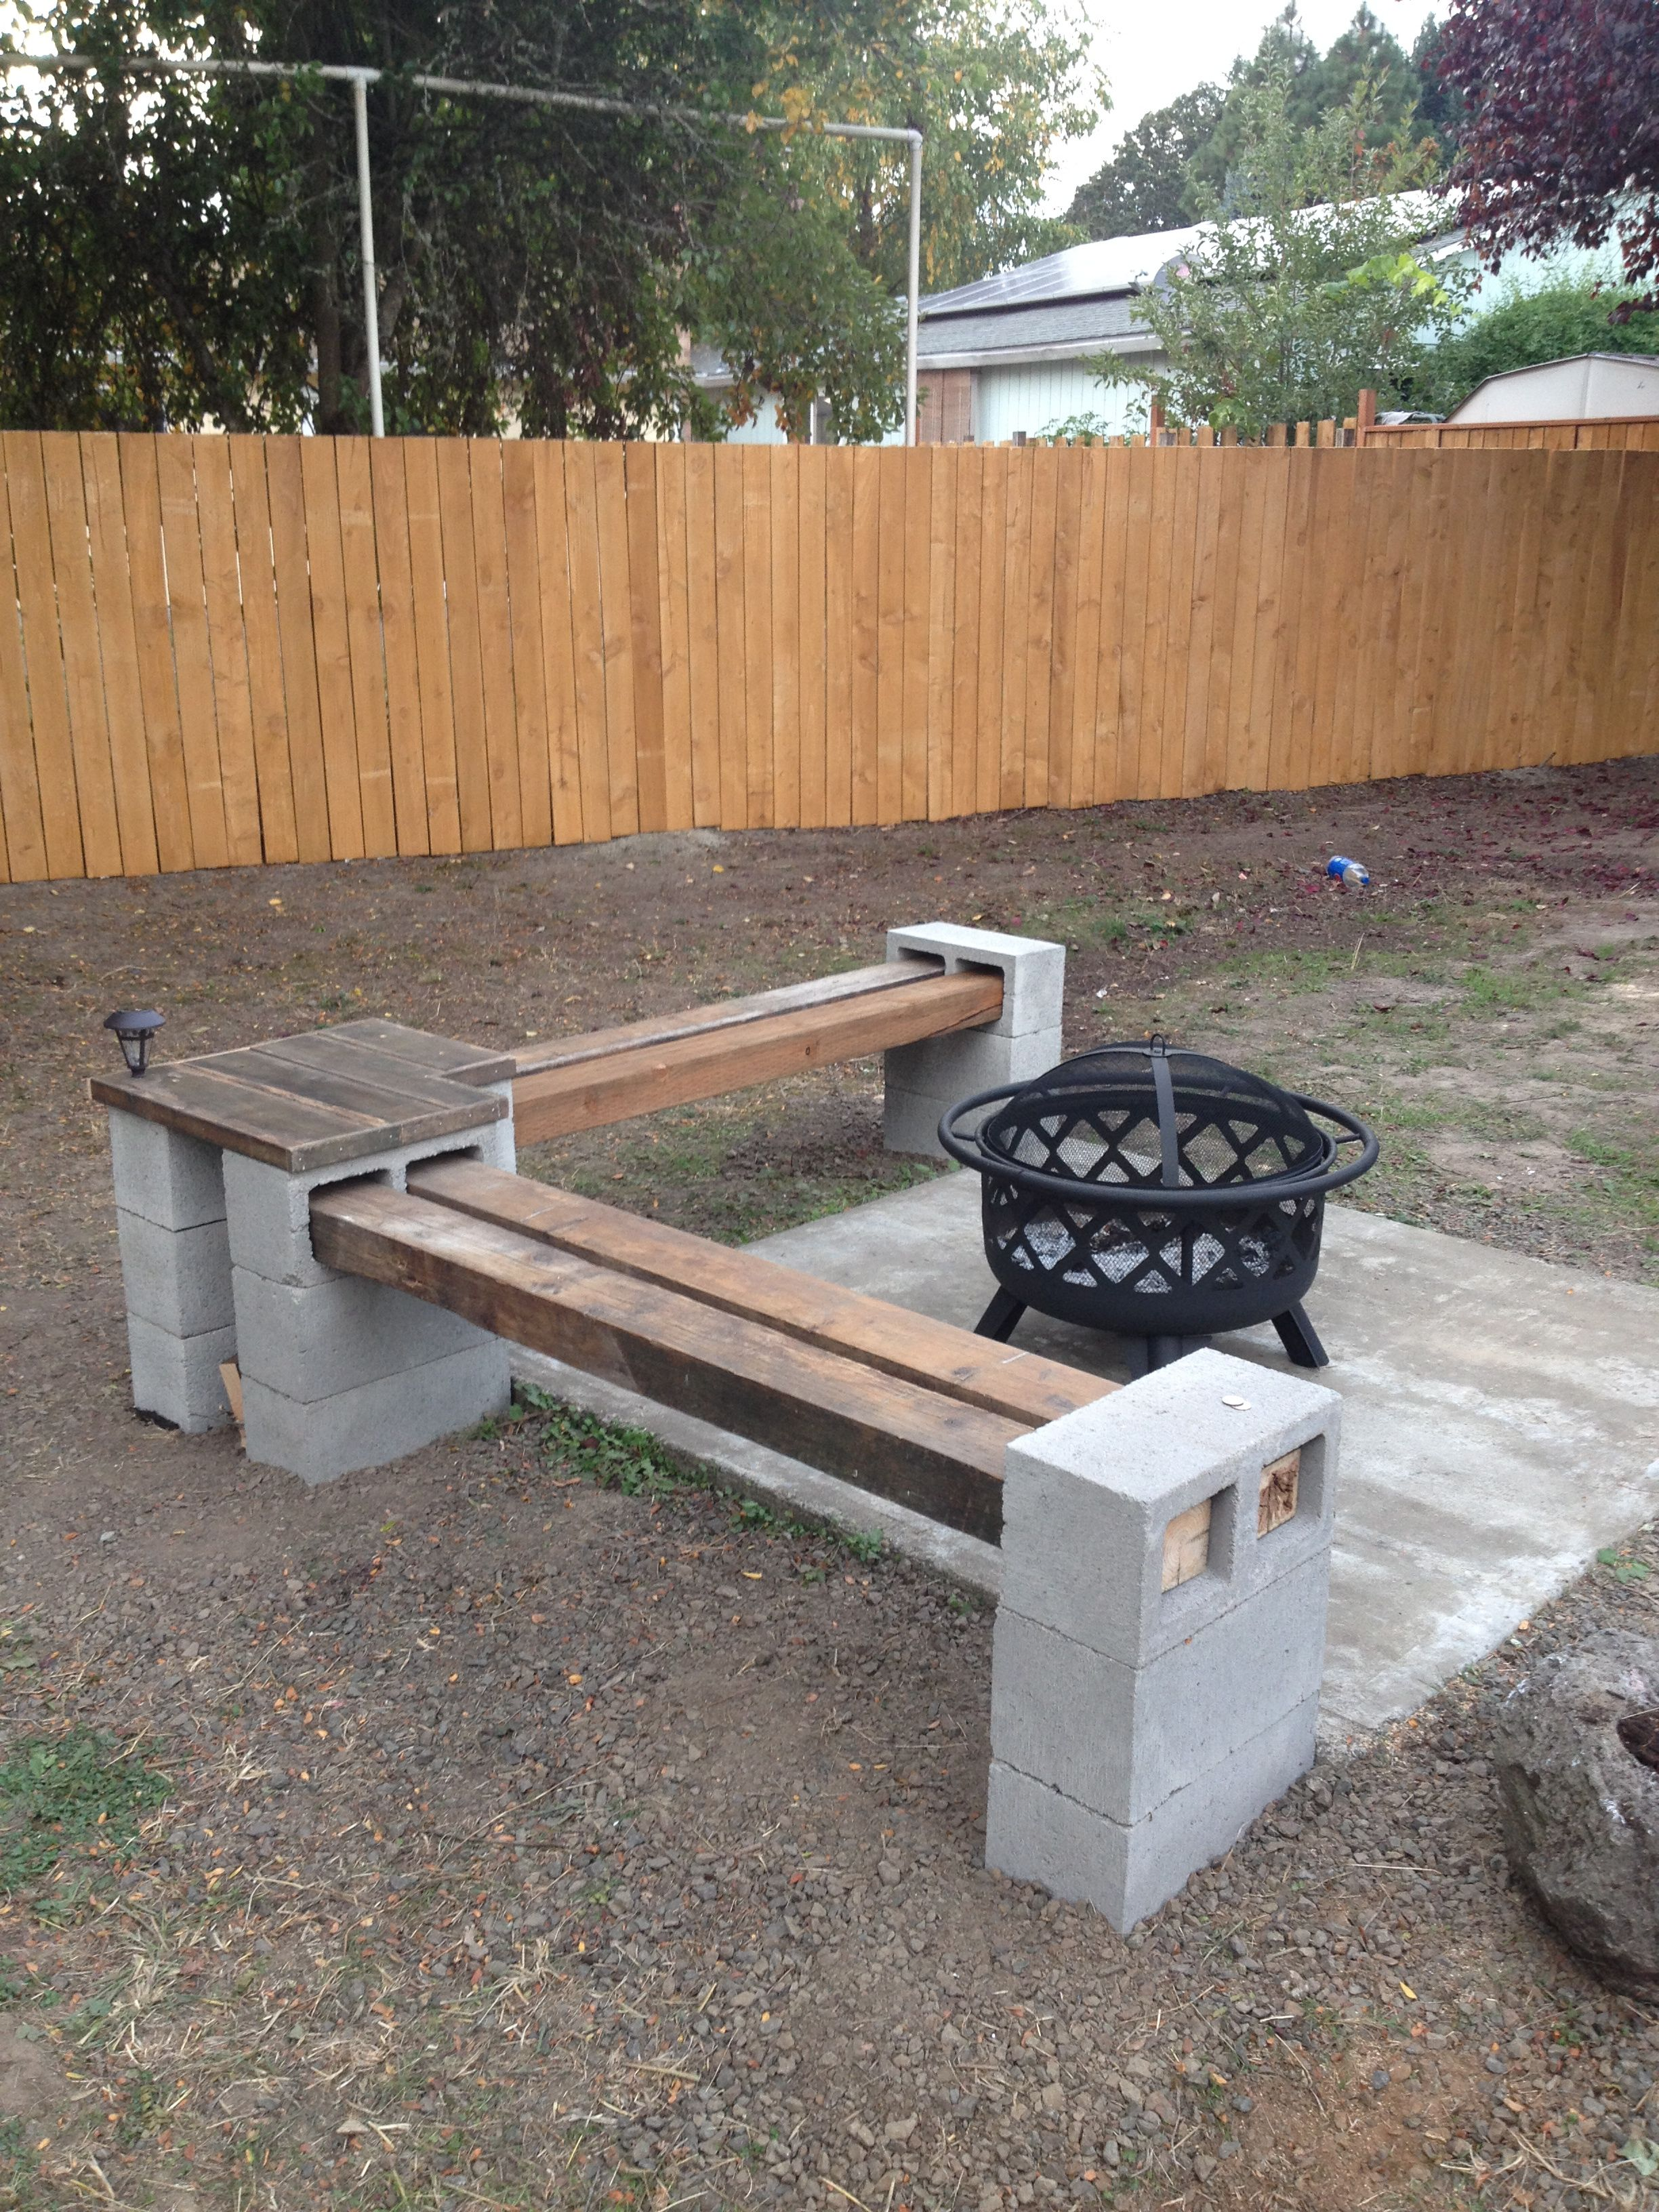 Build my very own fire pit bench with table. Fire pit